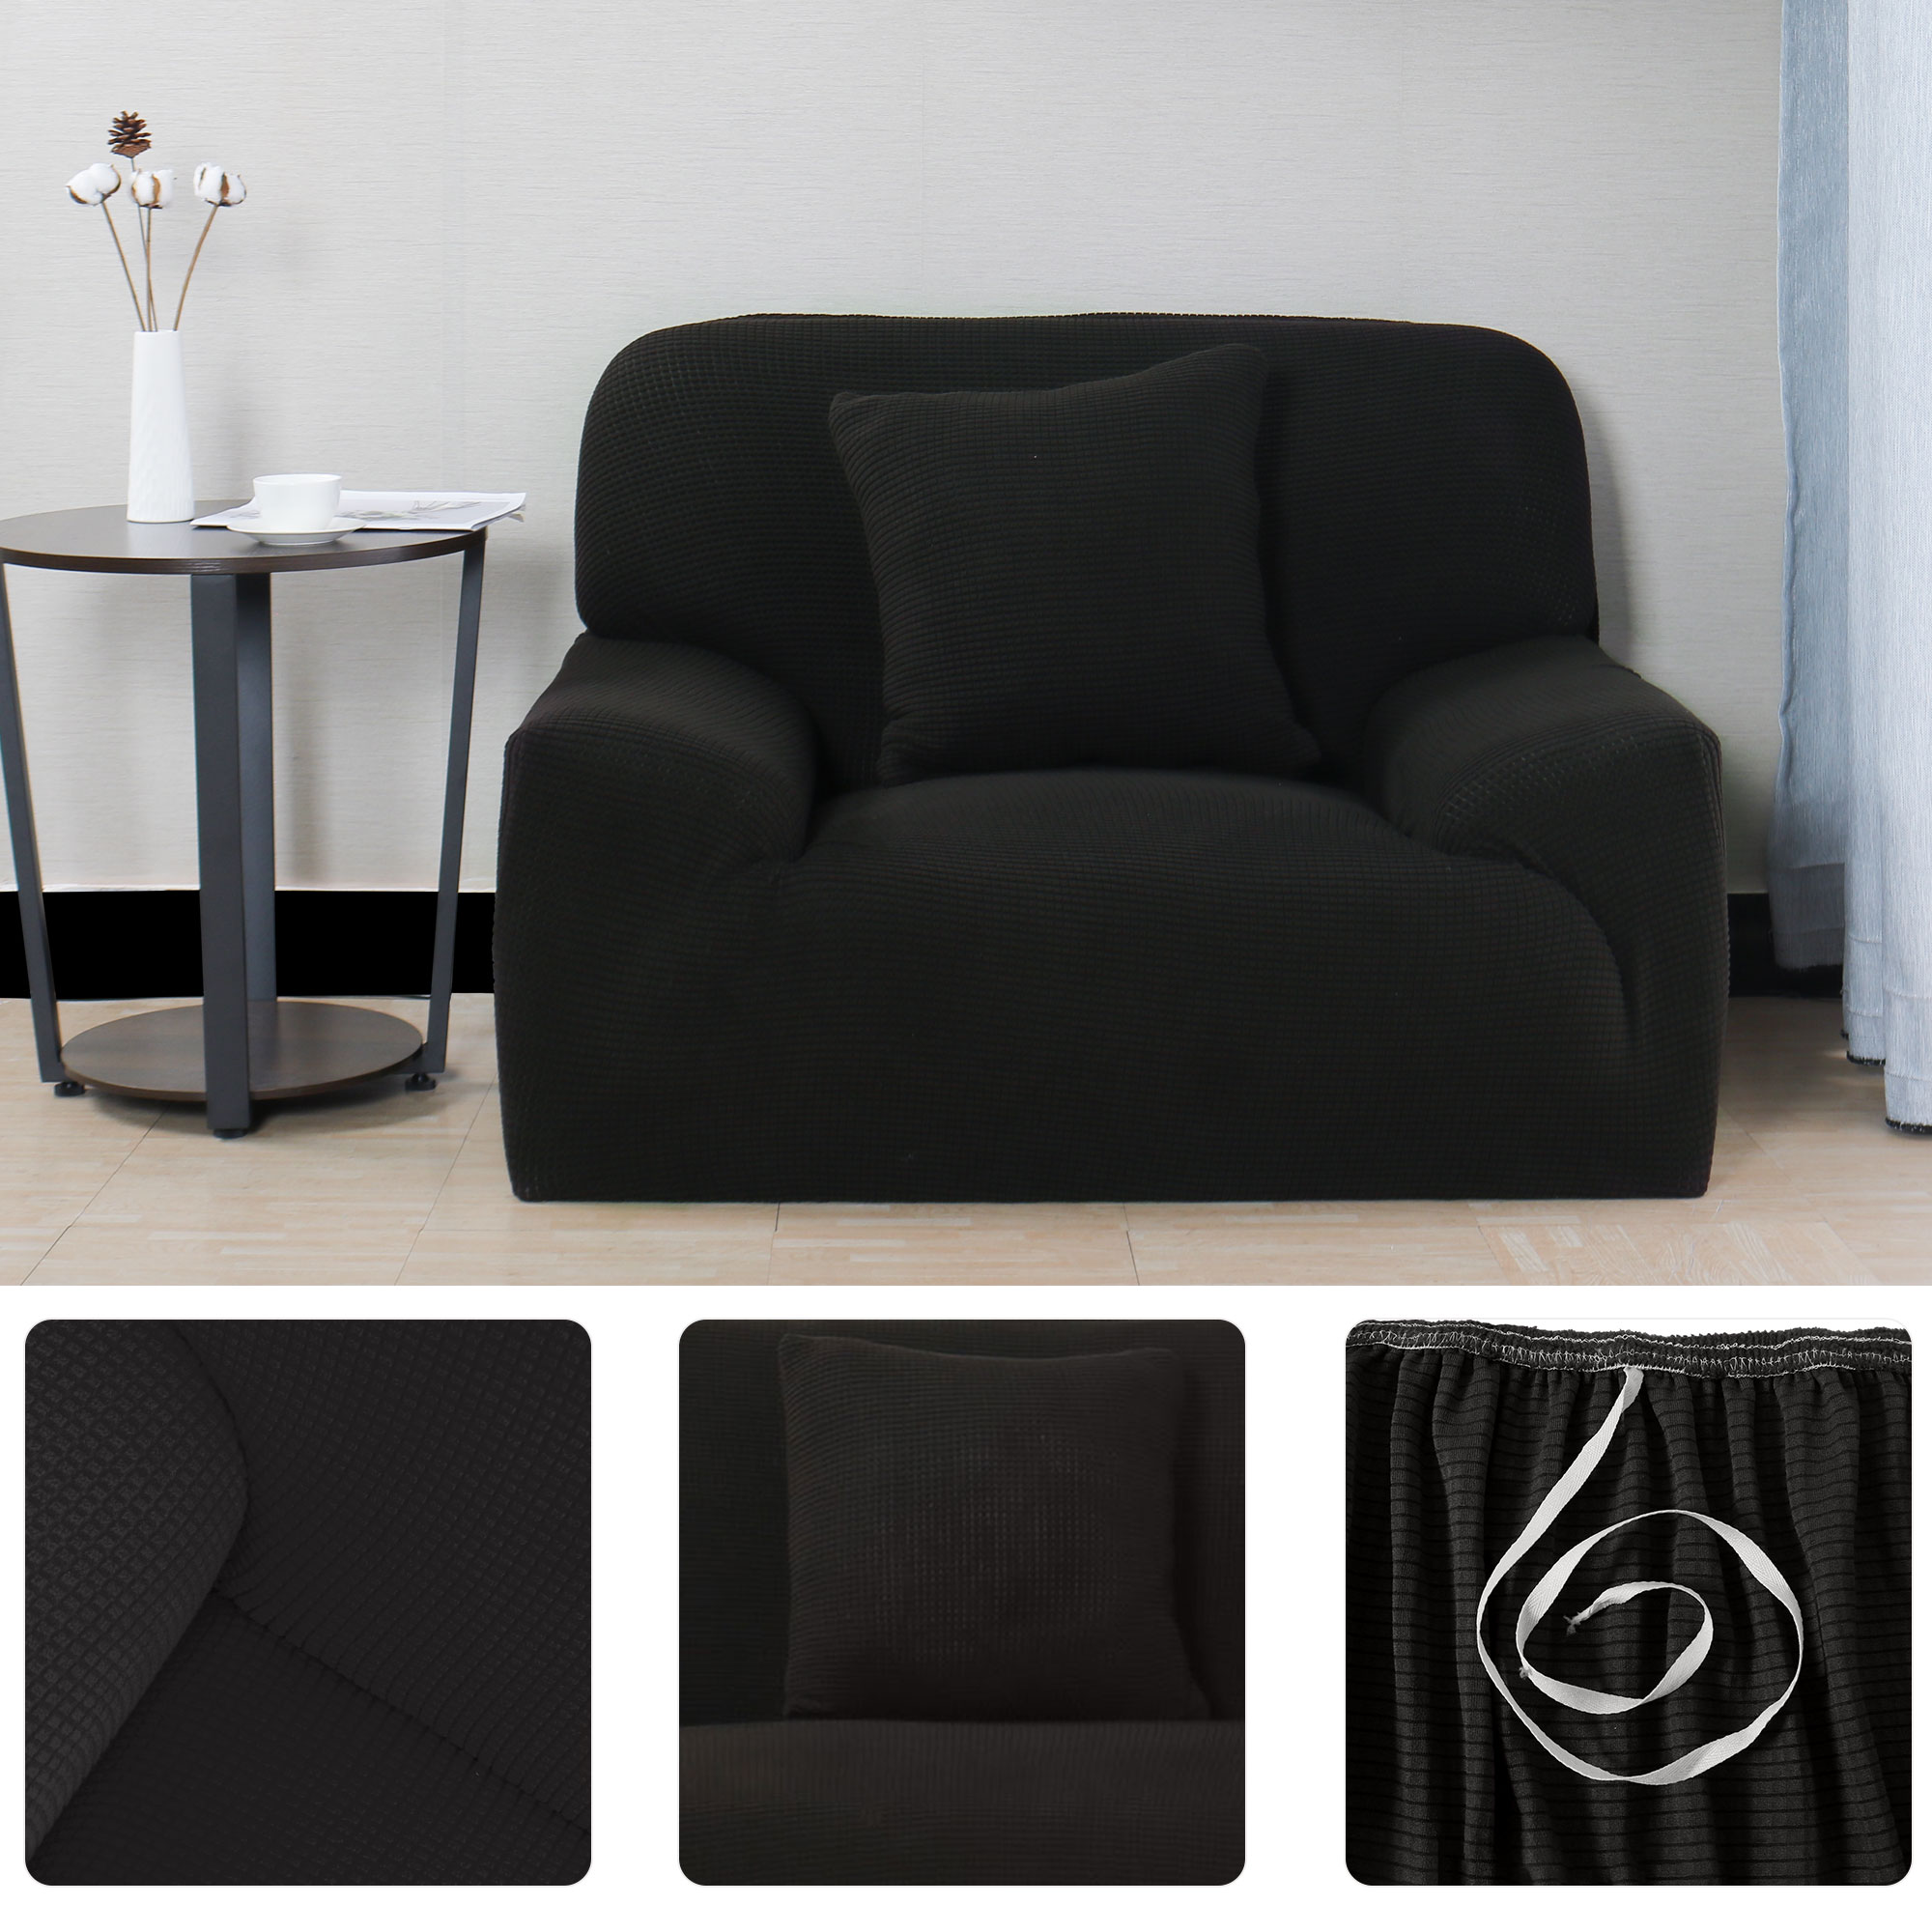 """Jacquard Sofa Covers 1-Piece 1 2 3 4 Seaters Couch Cover Home Furniture Protector #Black 35""""-55"""" - image 4 of 7"""